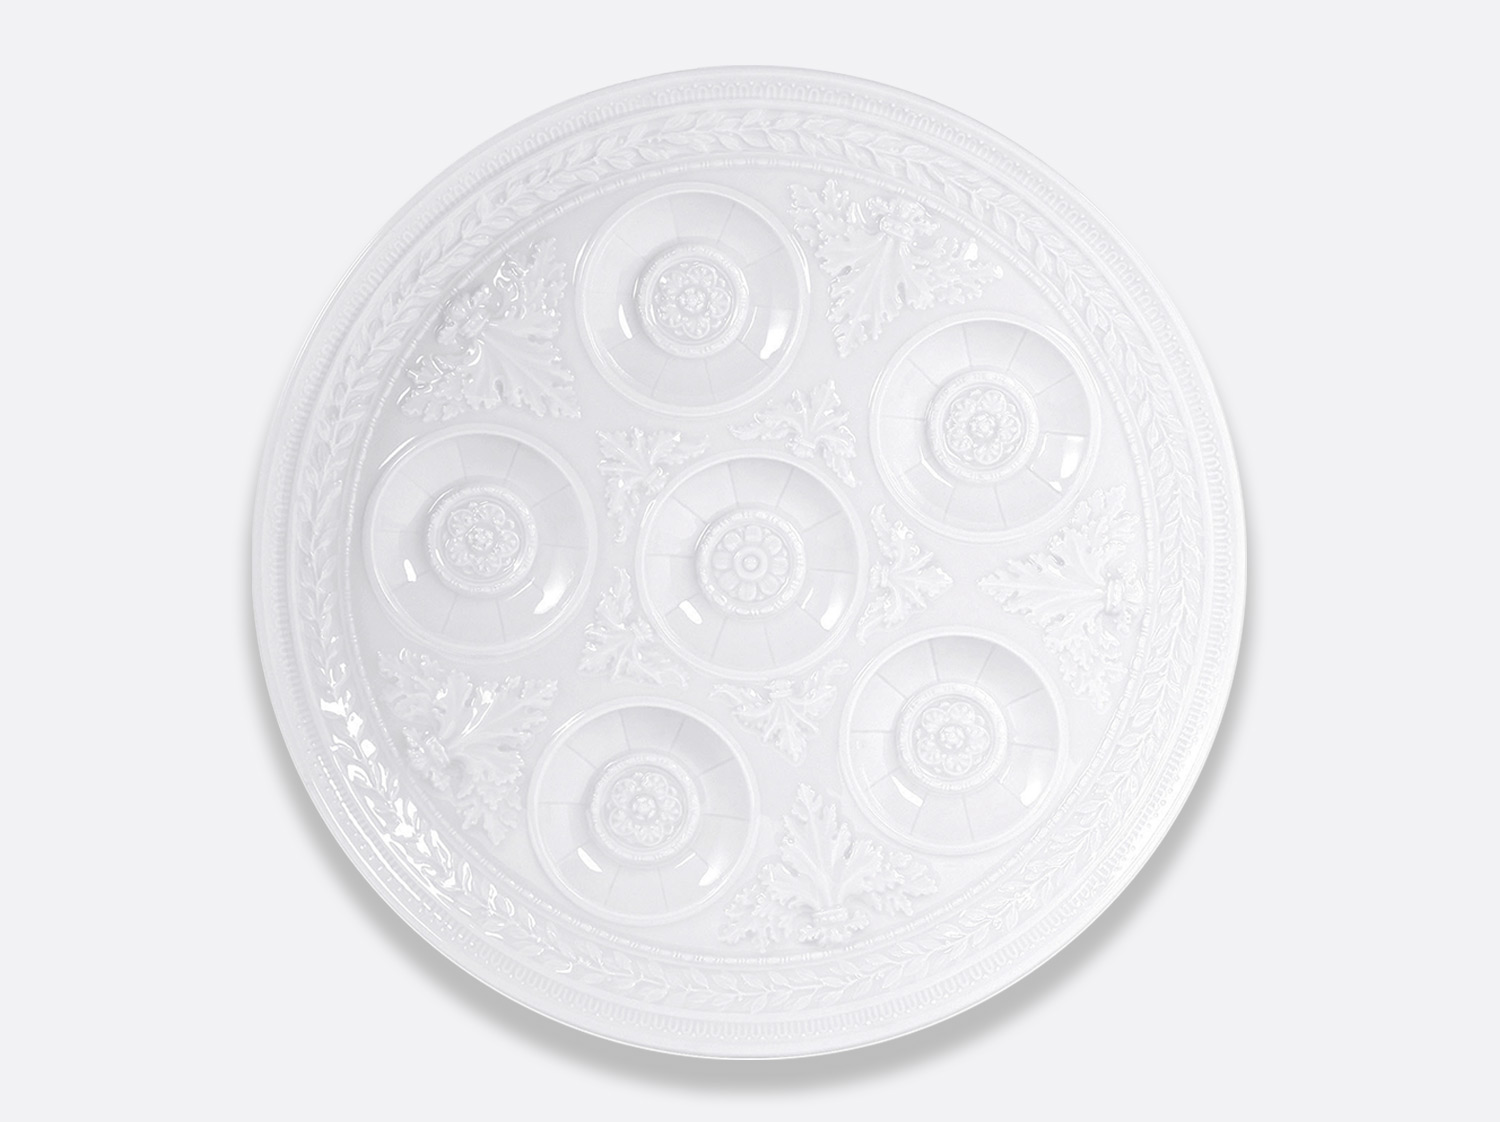 Plat à cocktail 37 cm en porcelaine de la collection Louvre Bernardaud